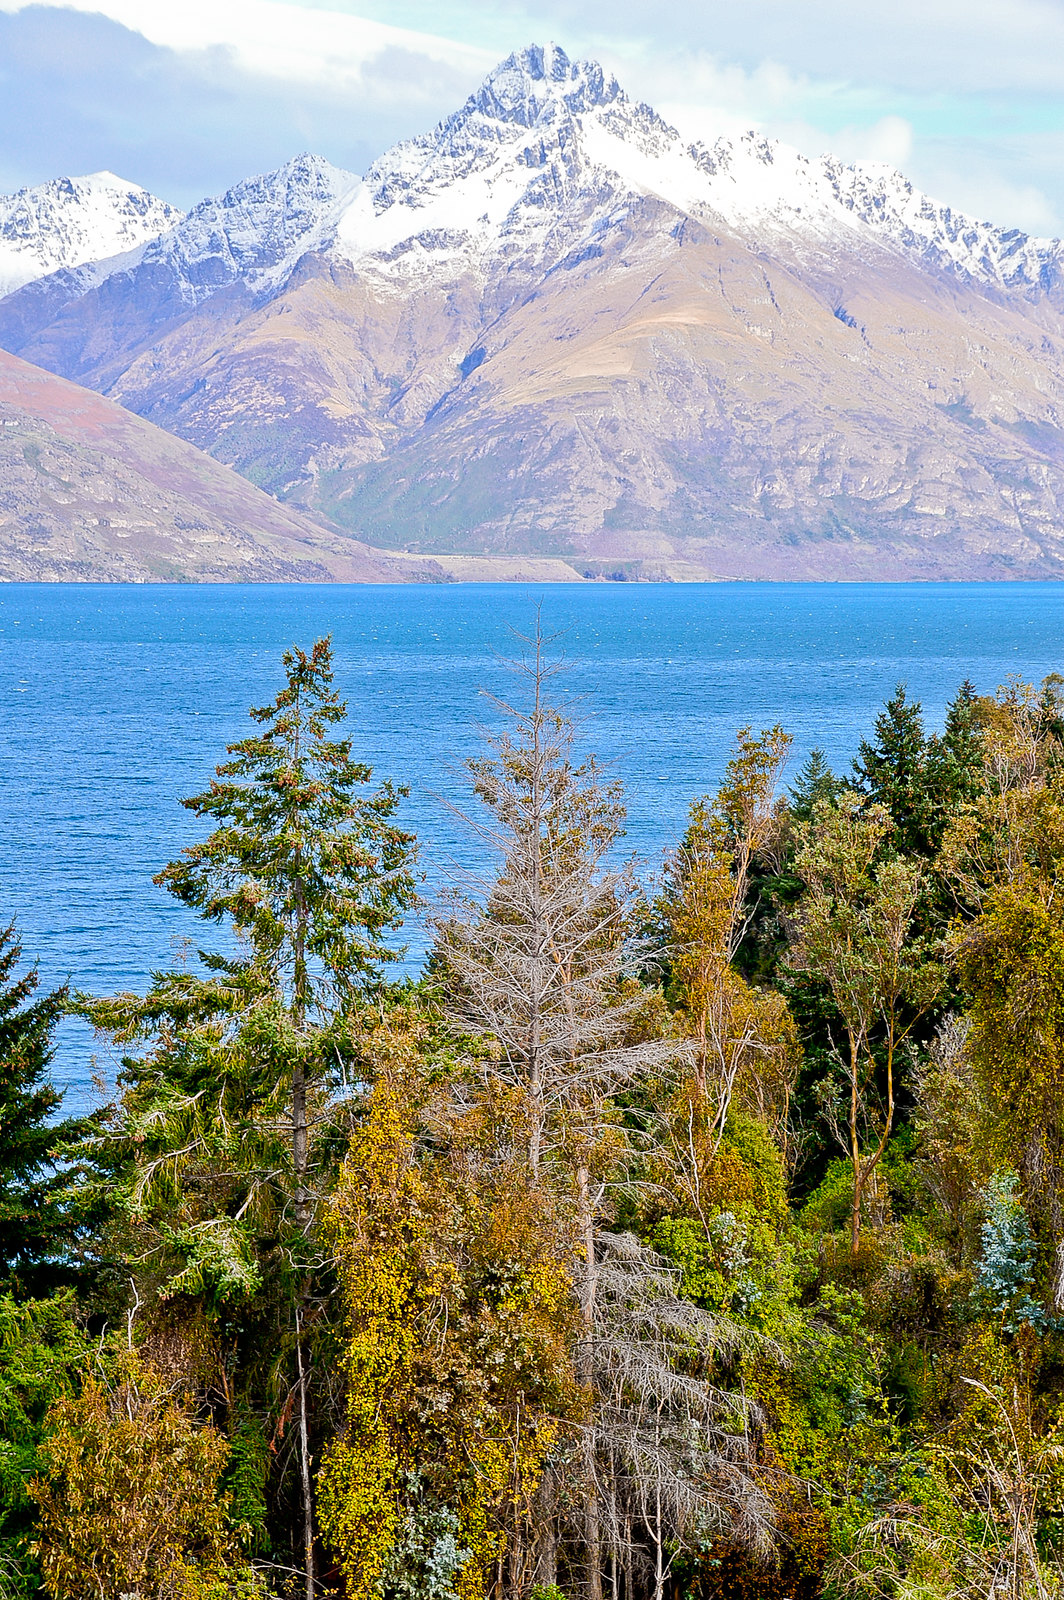 Journey to Glenorchy, New Zealand